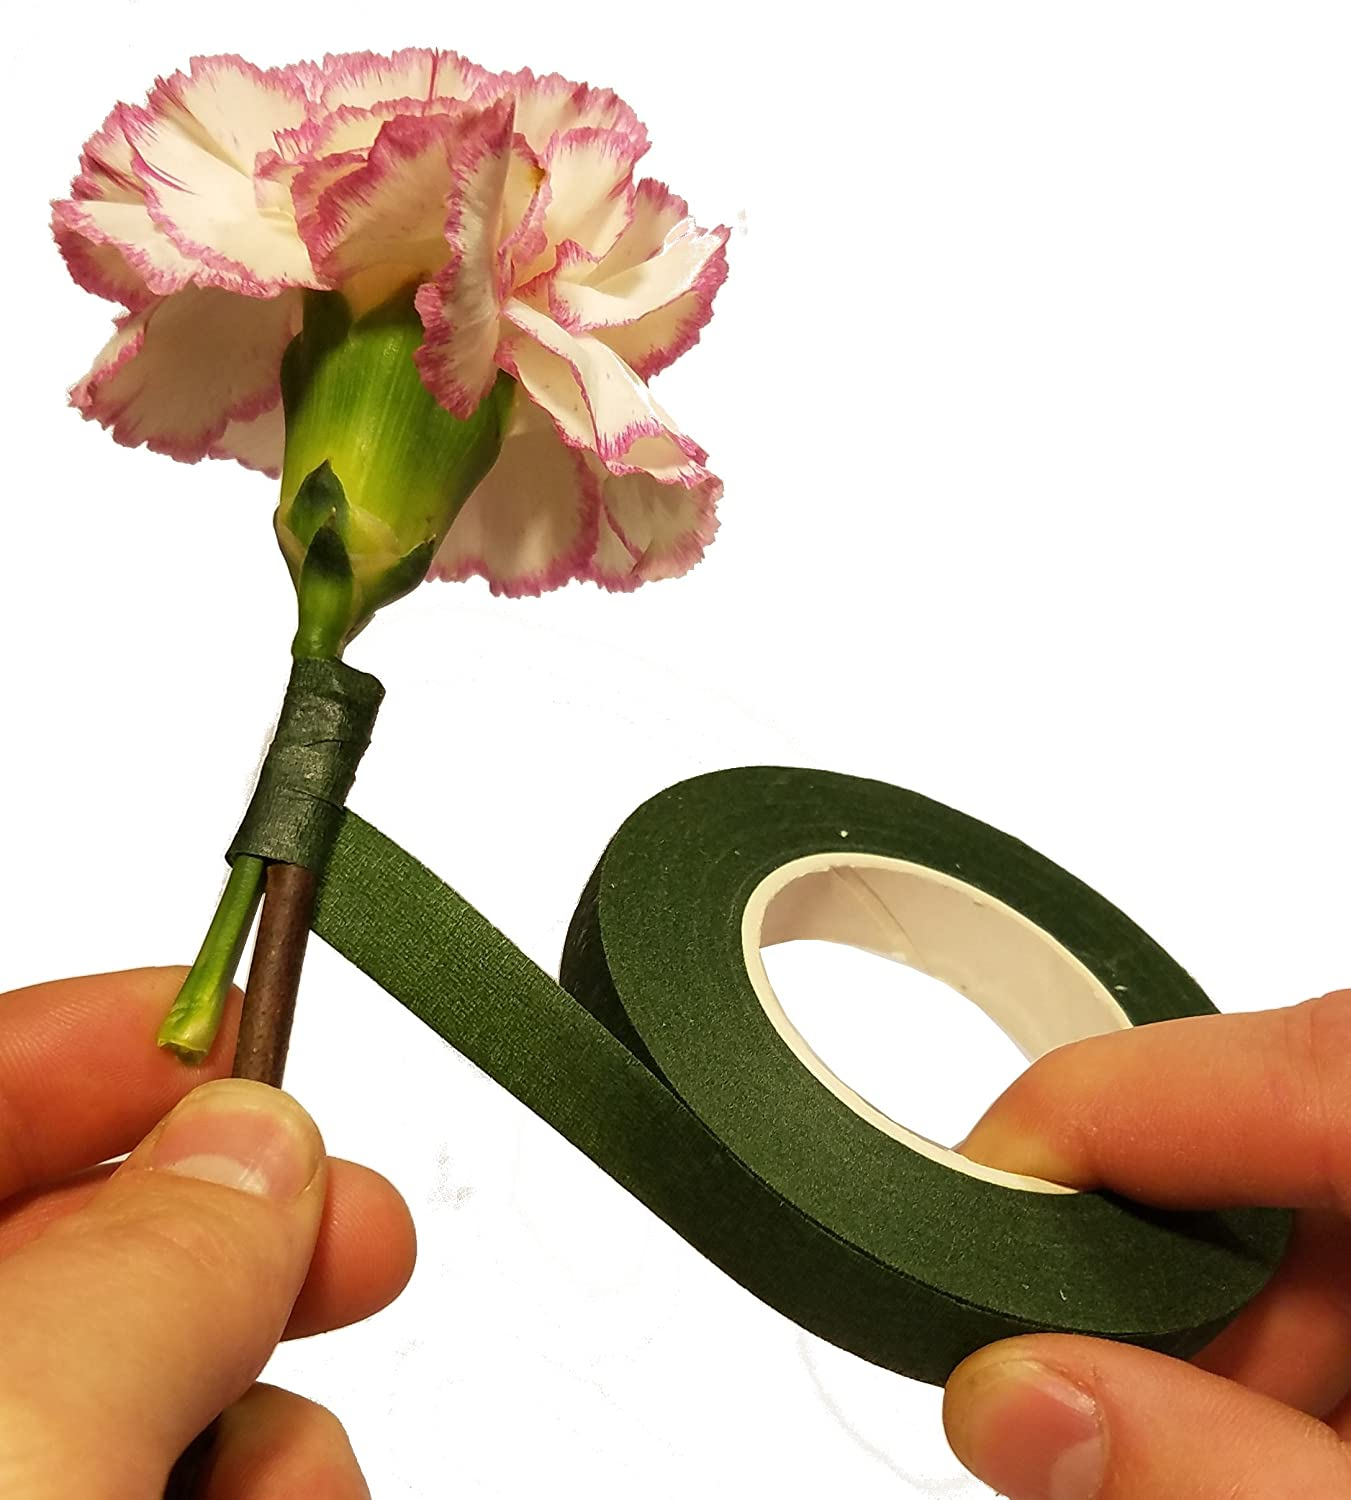 0.5 Inch Wide by 30 Yard for Bouquet Stem Wrap Florist Tapes Flowers Making Tapes Carnatory 15 Rolls Floral Tapes Floral Adhesives with 15 Colors Floral Arrangement and Crafts- 360 Yards Total Floral Tape Create Beautiful Bouquets